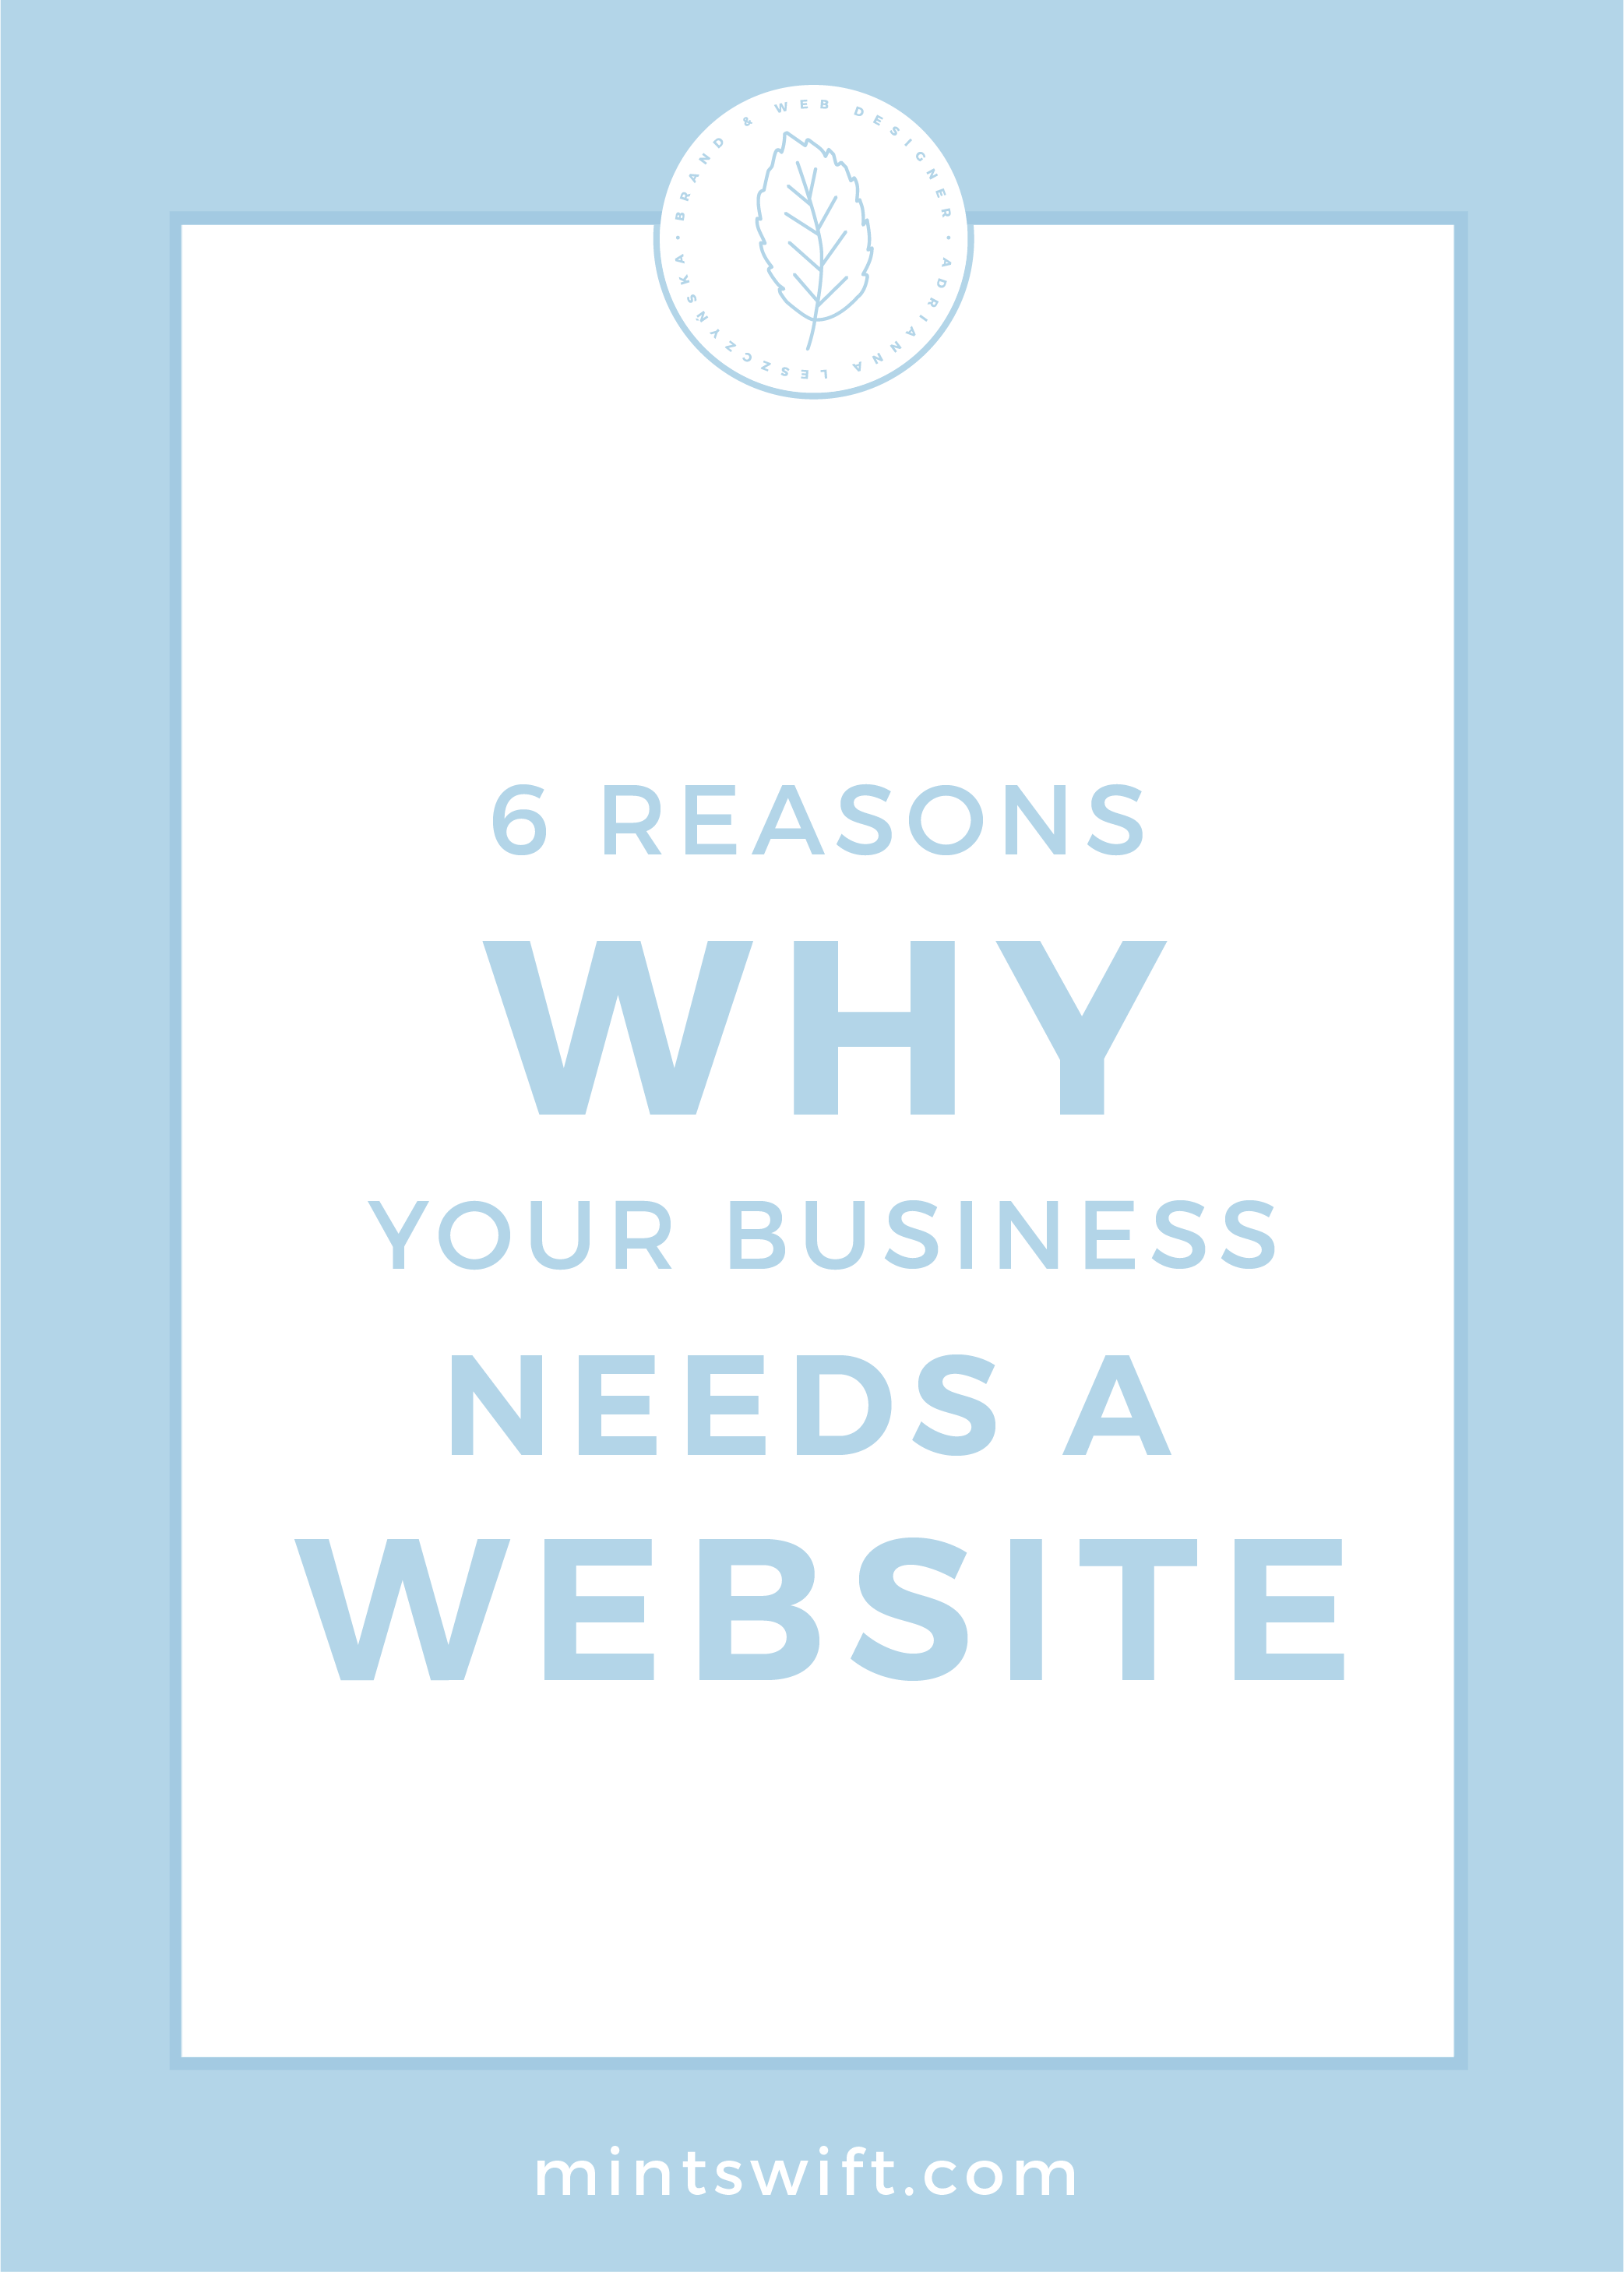 6 Reasons Why Your Business Needs a Website by MintSwift